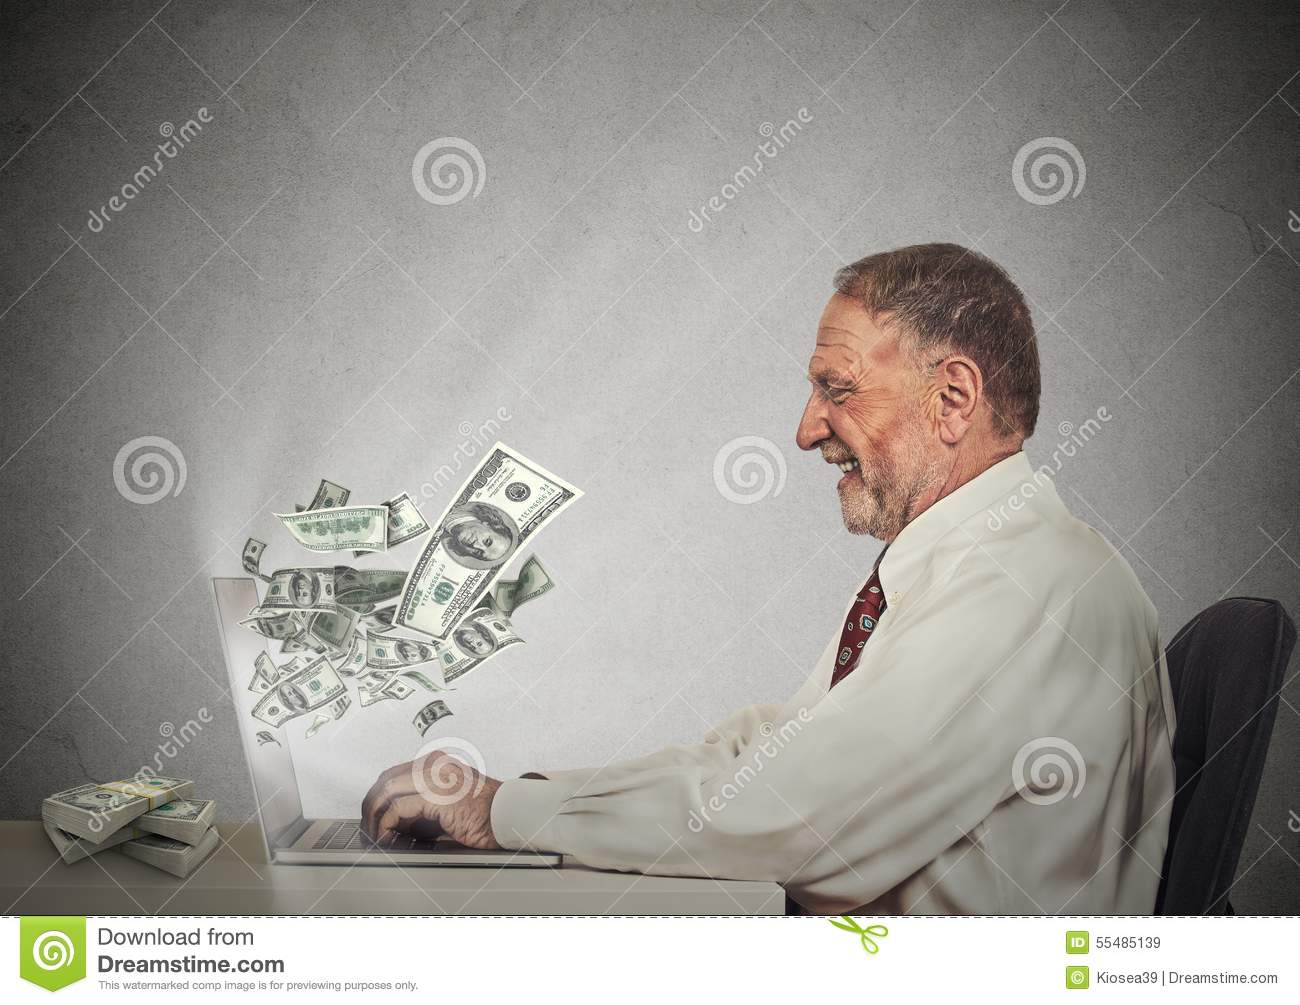 Smiling business man working online on computer earning money